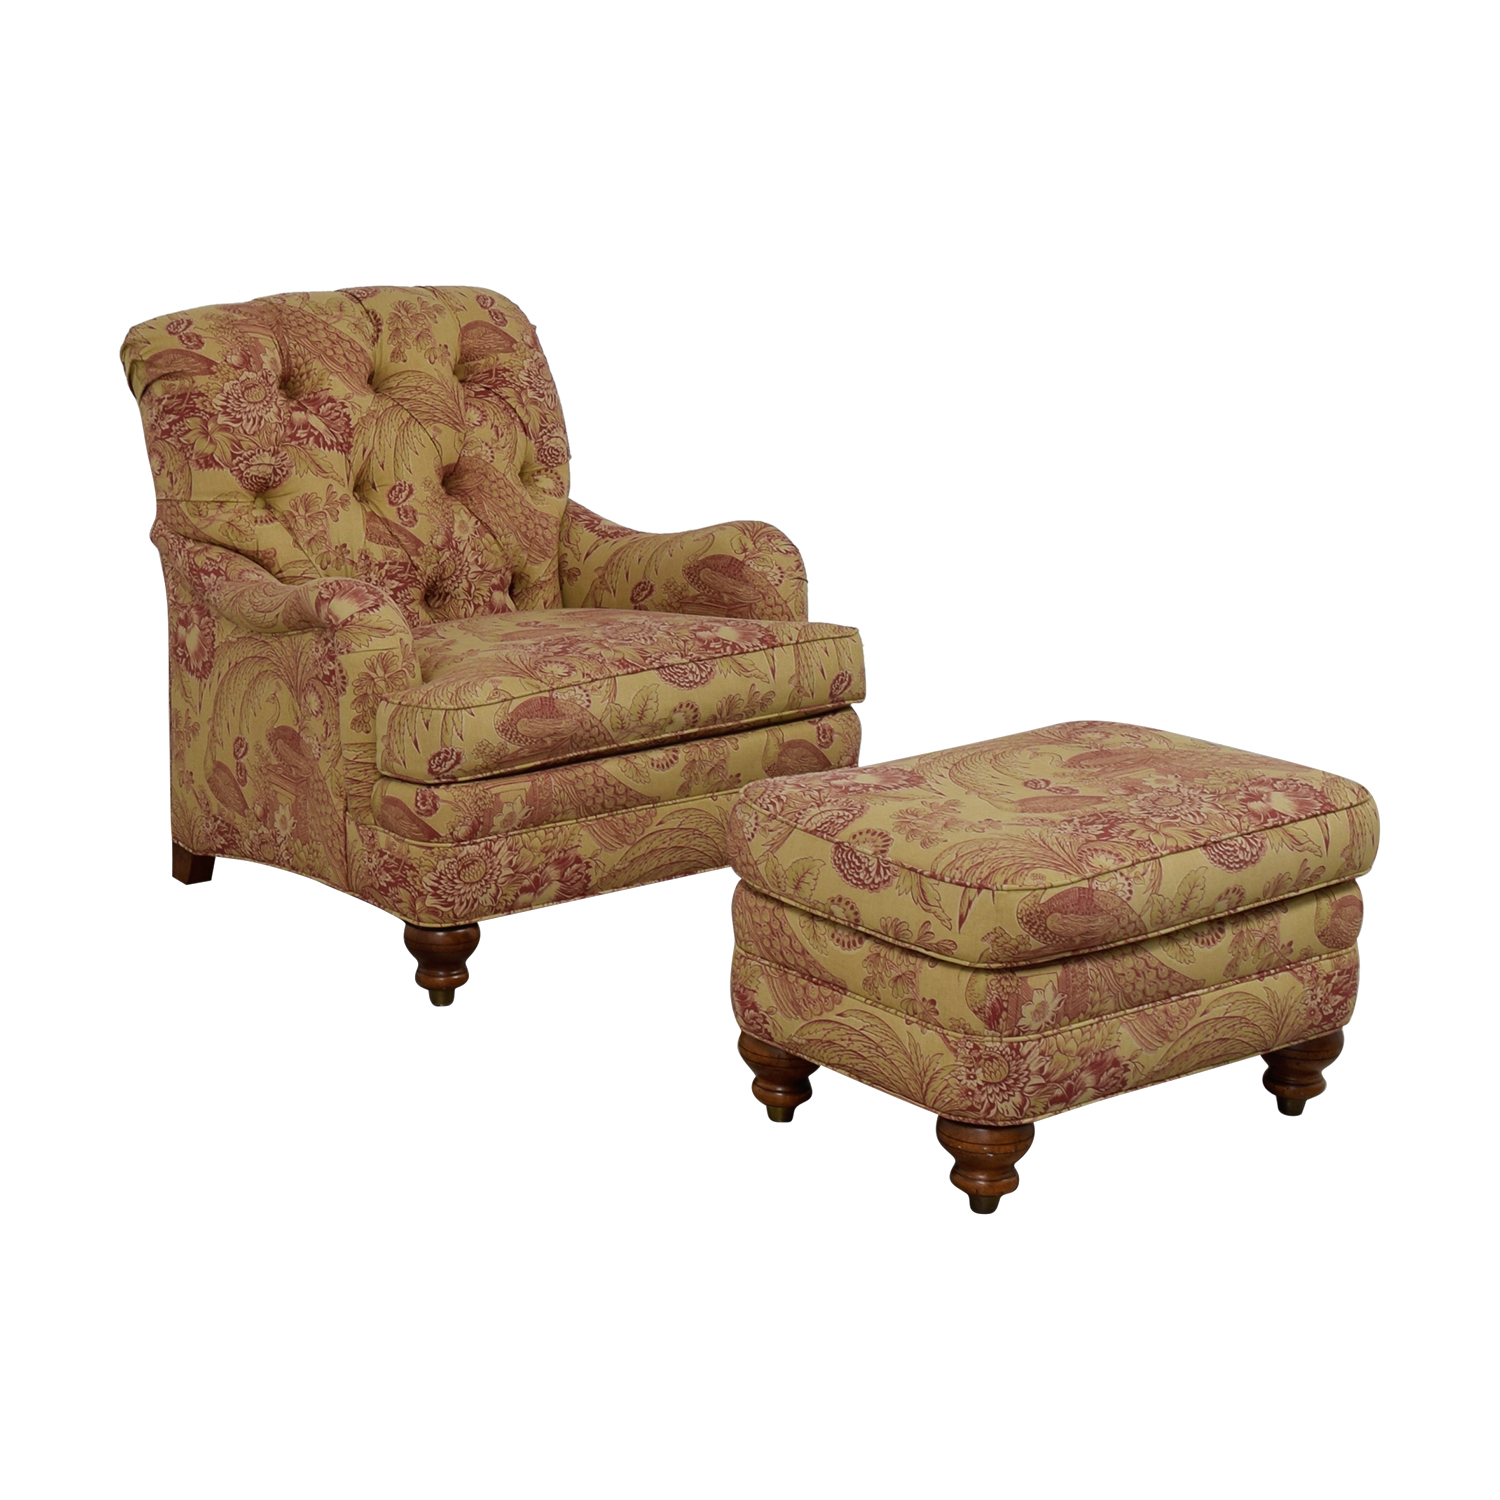 ... Ethan Allen Ethan Allen Mercer Beige And Red Tufted Chair And Ottoman  Price ...